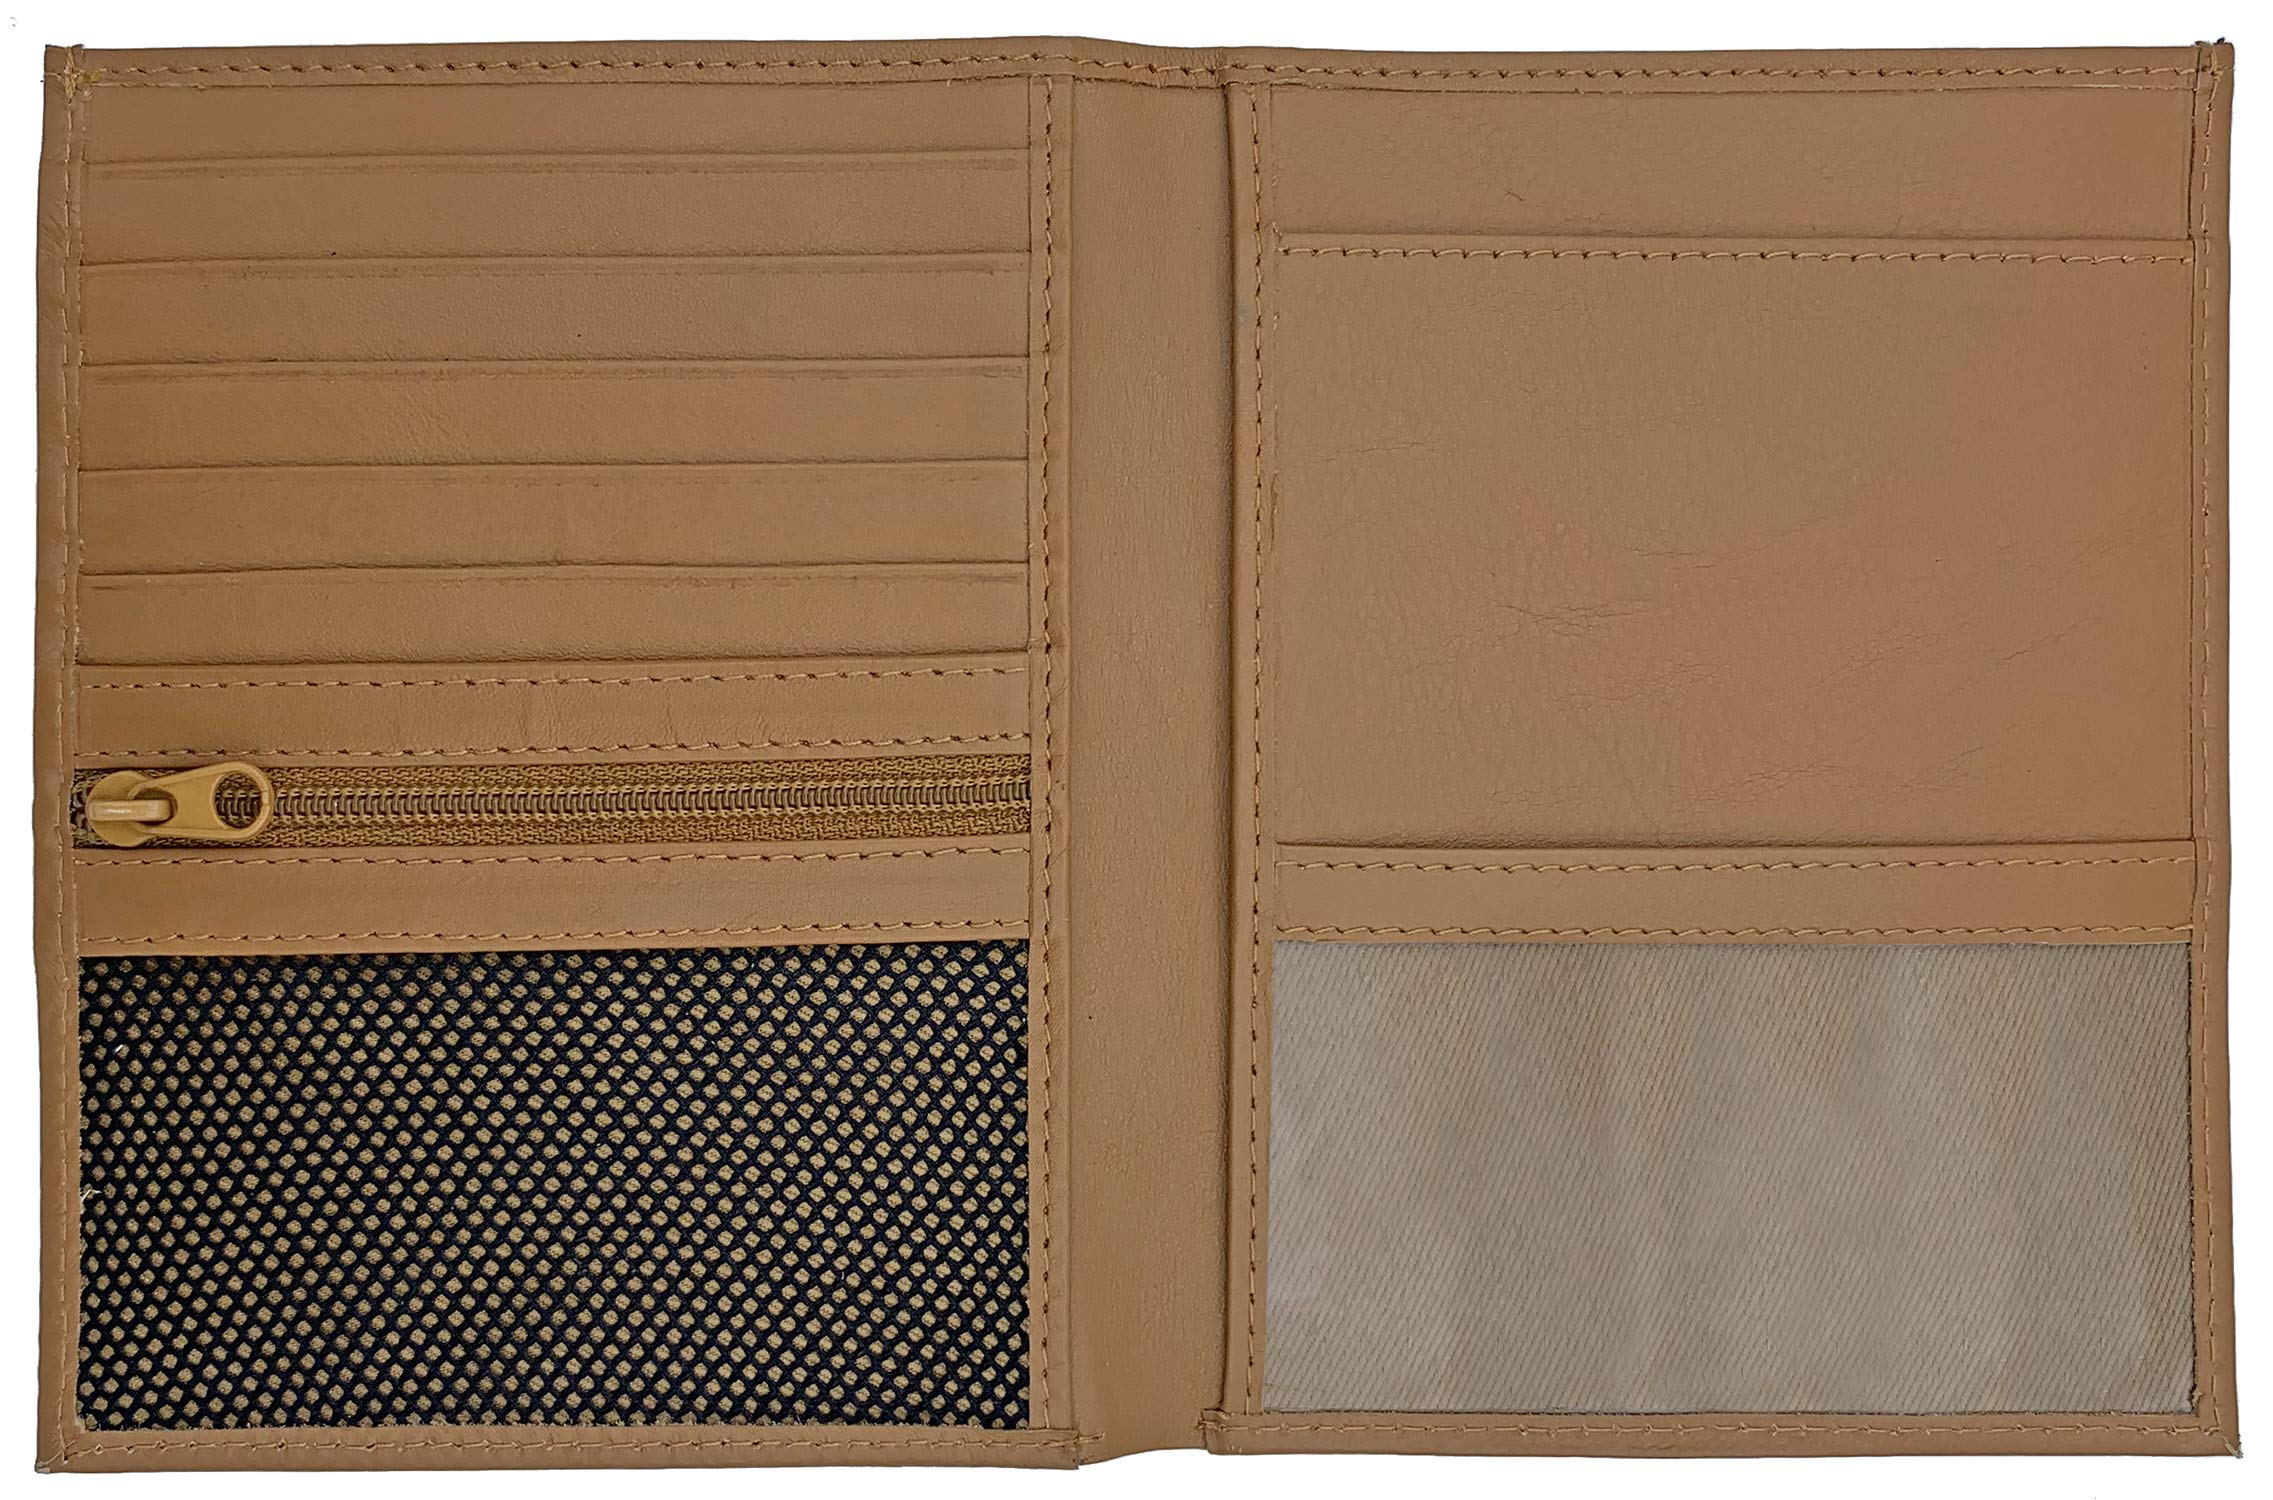 Light Brown RFID Blocking Genuine Leather Travel Passport Wallet Holder by 123 Cheap Checks